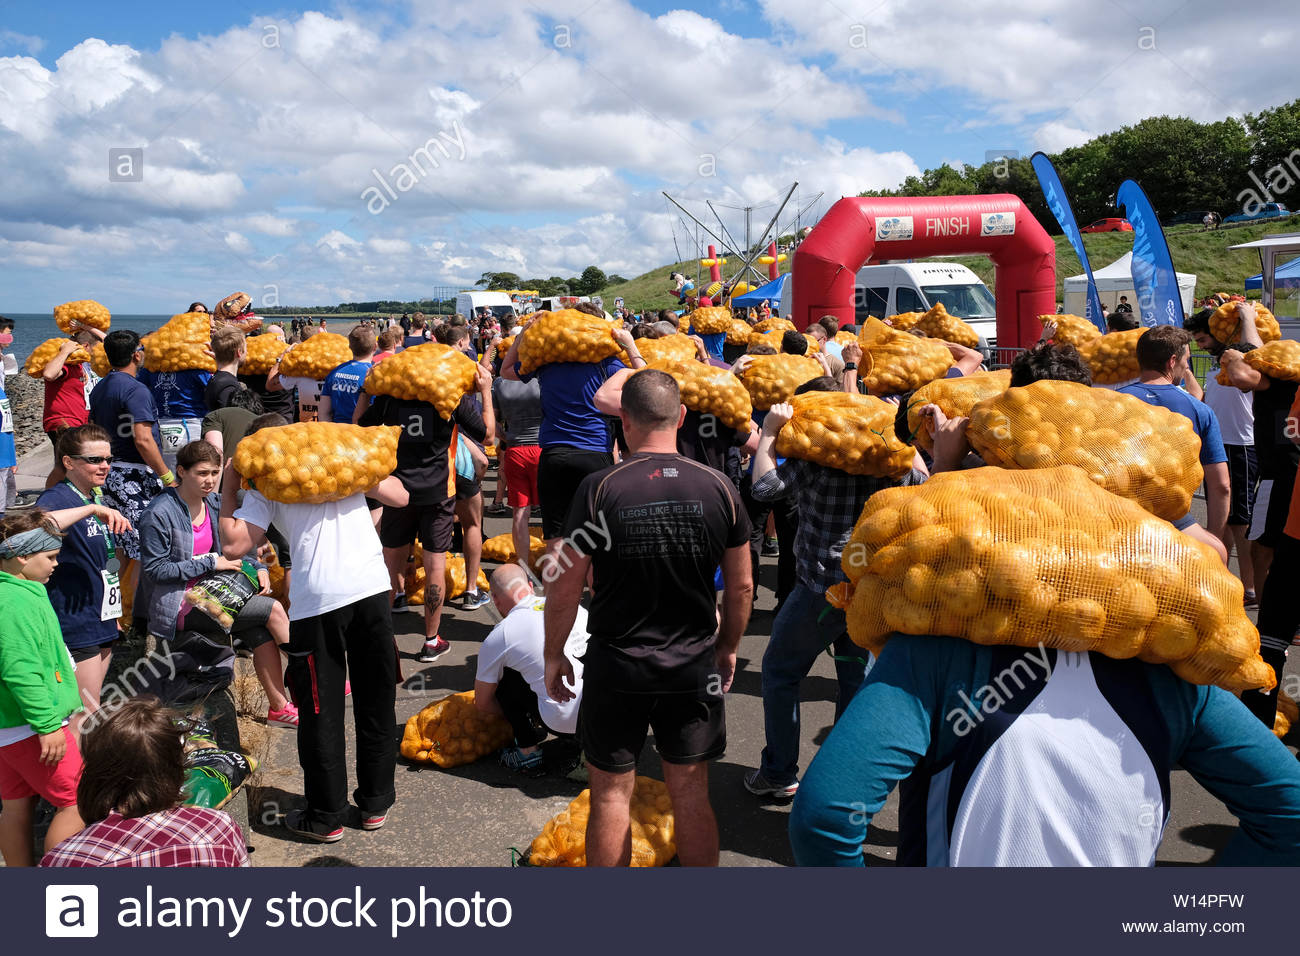 Edinburgh, Scotland, UK. 30th June 2019.  Participants with their bag of tatties gathering before competing in The Great Scottish Tattie Run at Silverknowes Promenade, organised by Great Scottish Events, a fundraising event organiser group. The Race is for one mile with a bag of potatoes 20 kilo for men,10 kilo for women. All participants get to keep their bag of tatties. Credit:Craig Brown - Stock Image